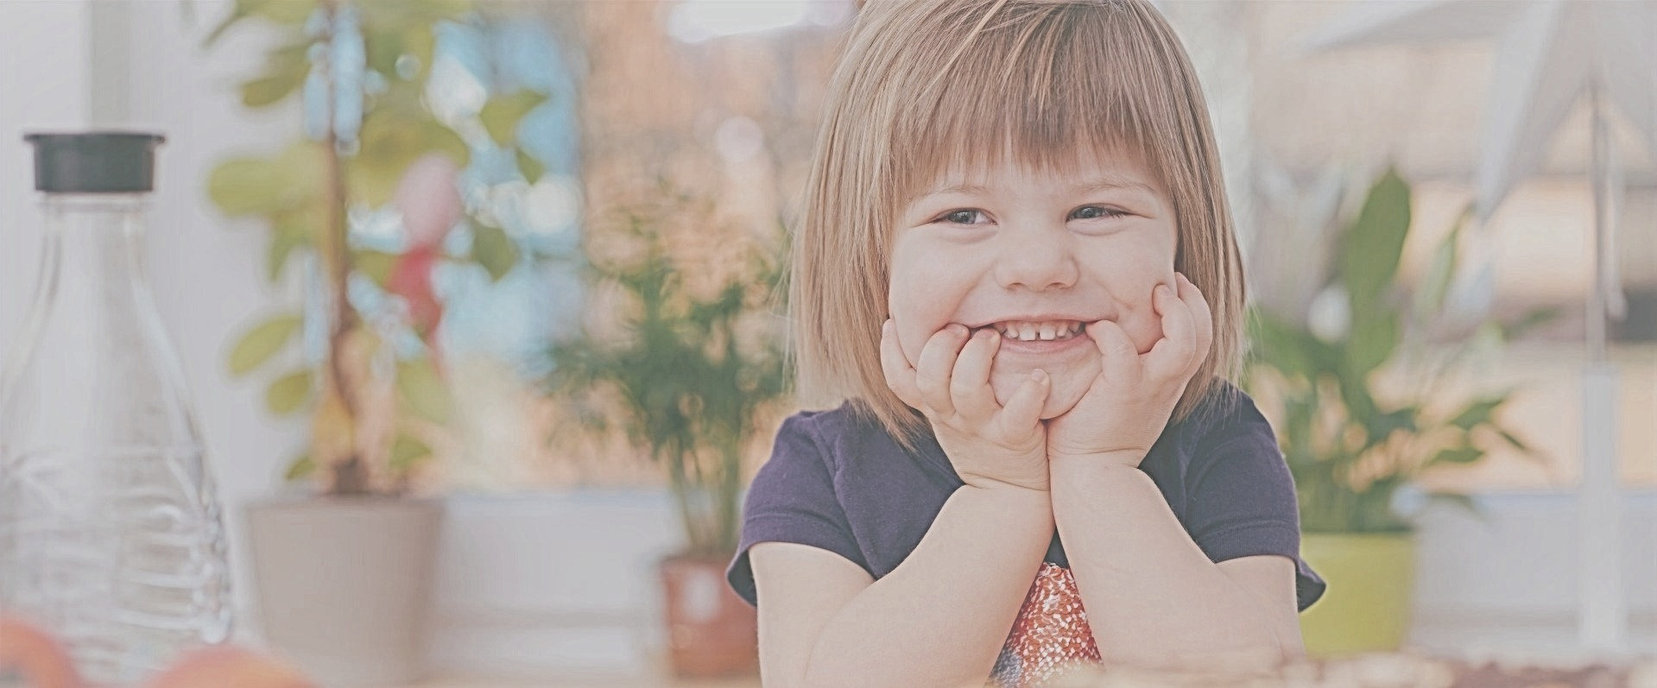 toddler-touching-her-face-while-smiling